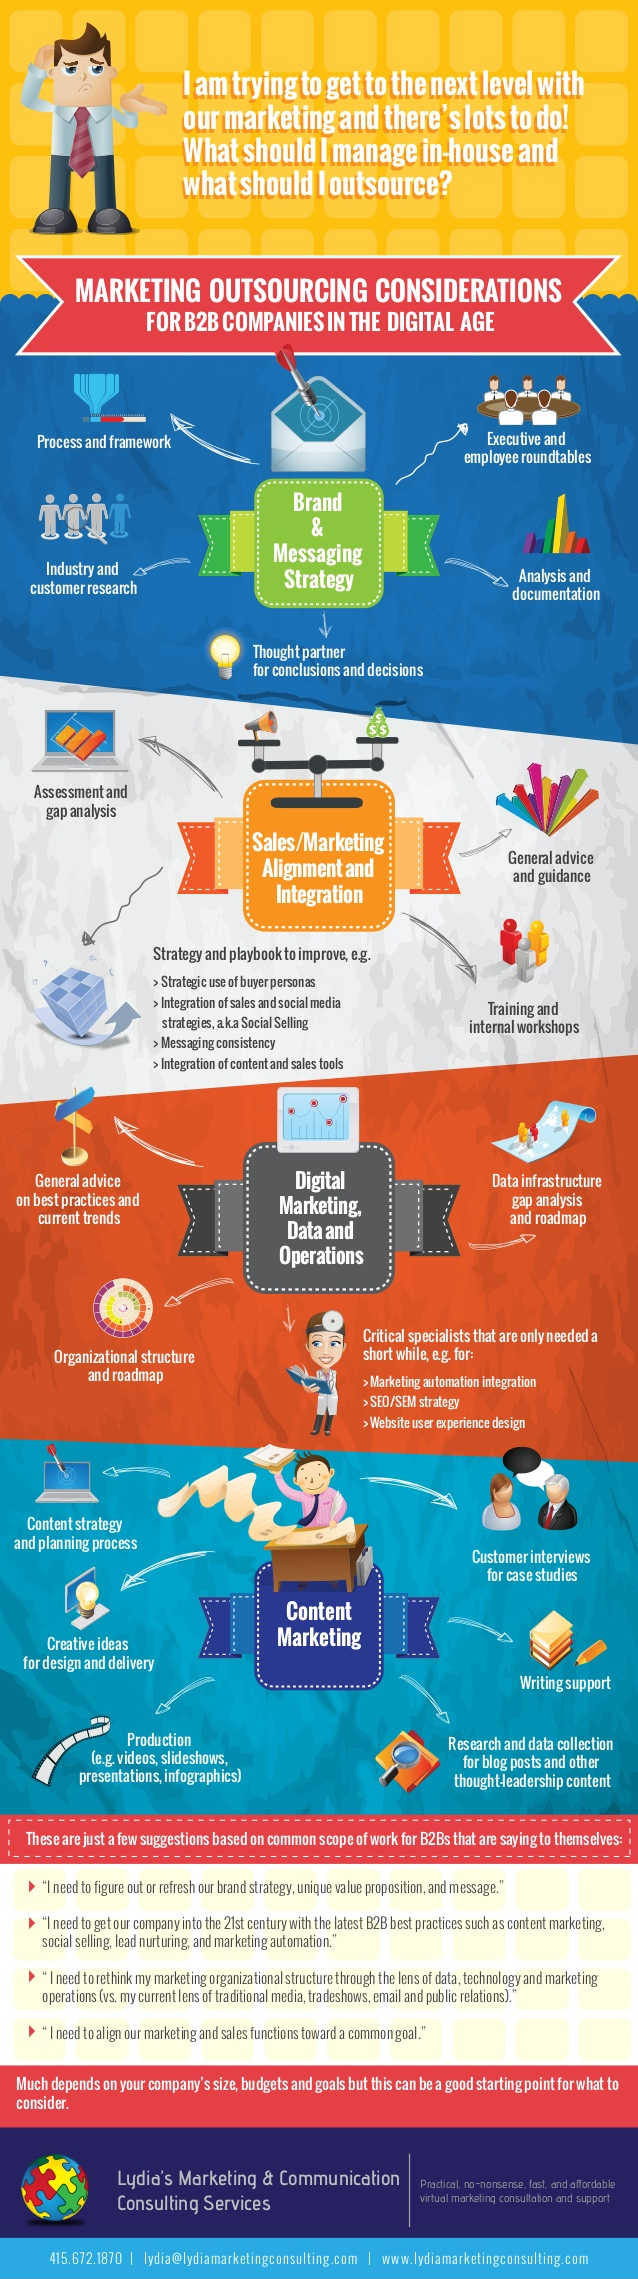 infographic-b2b-marketing-outsourcing-considerations-and-tips